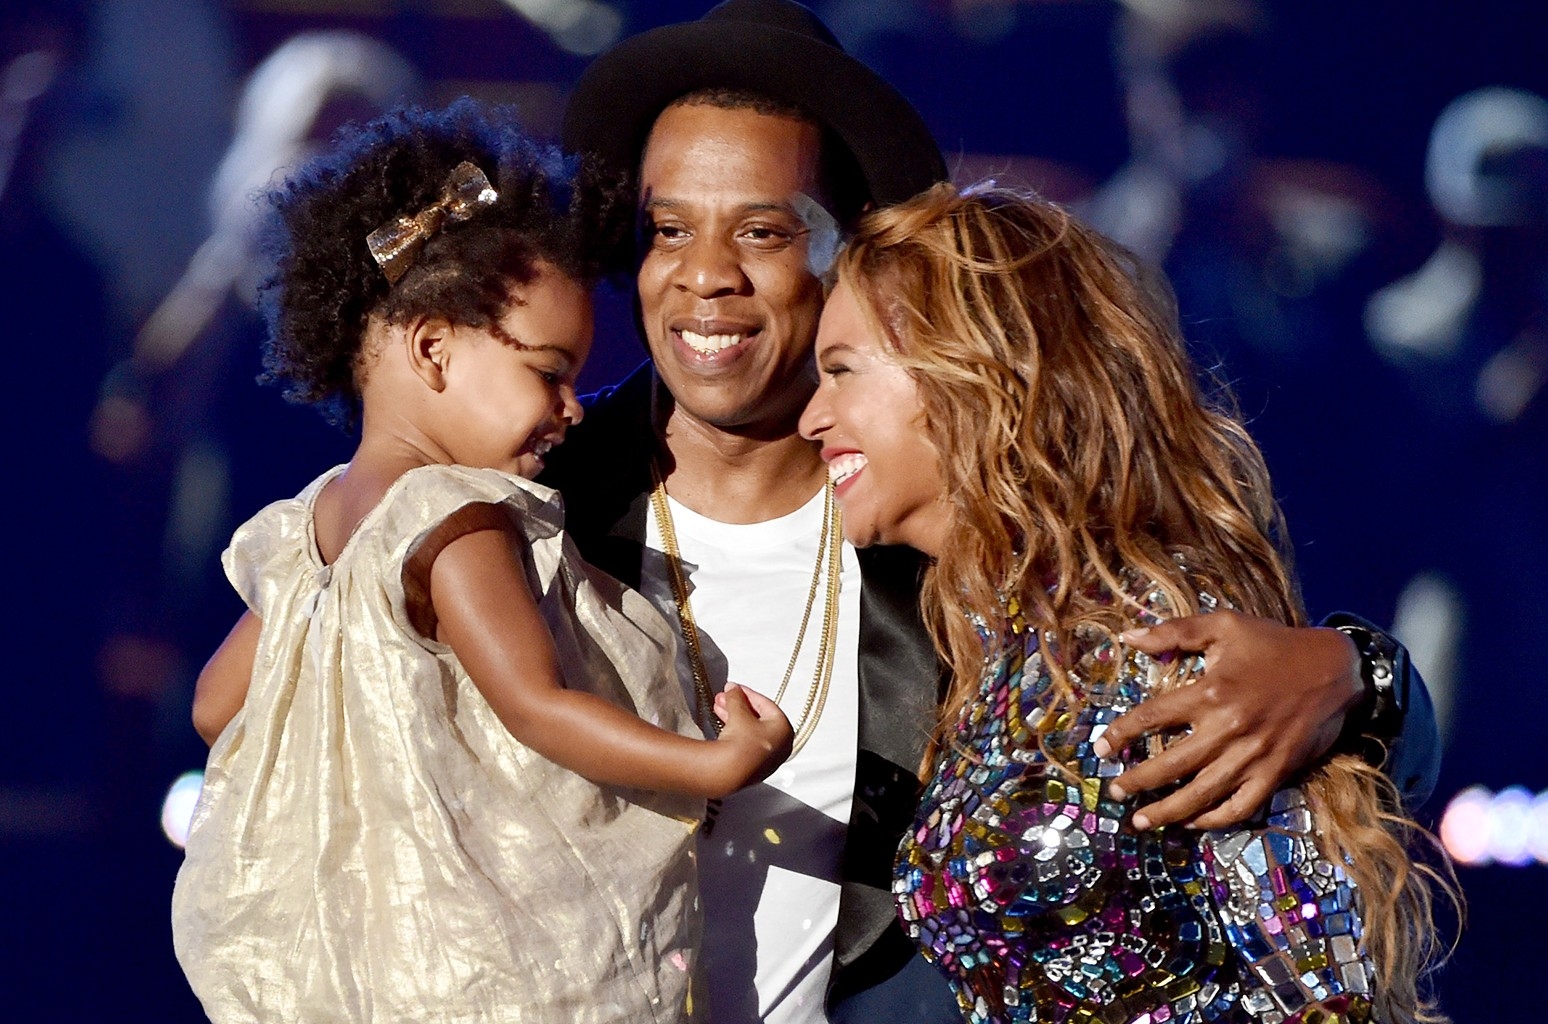 Jay Z and Beyonce with daughter Blue Ivy Carter onstage during the 2014 MTV Video Music Awards at The Forum on Aug. 24, 2014 in Inglewood, Calif.